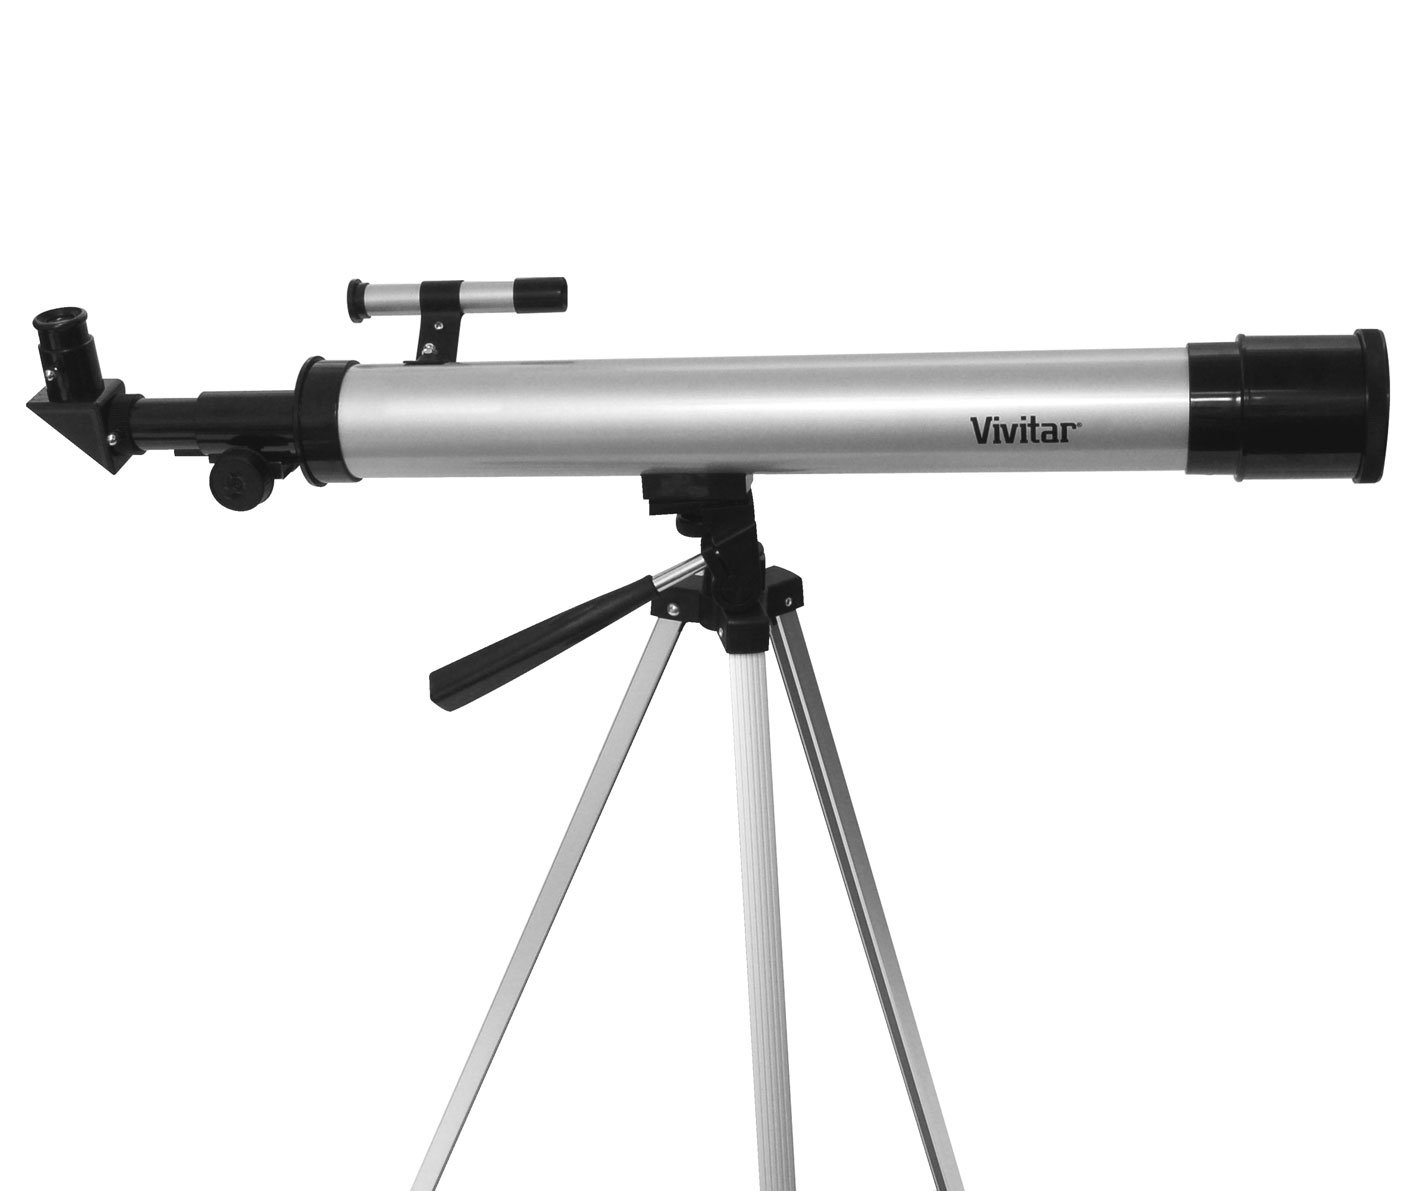 Vivitar TEL50600 60X/120X Telescope Refractor with Tripod (Black) by Vivitar